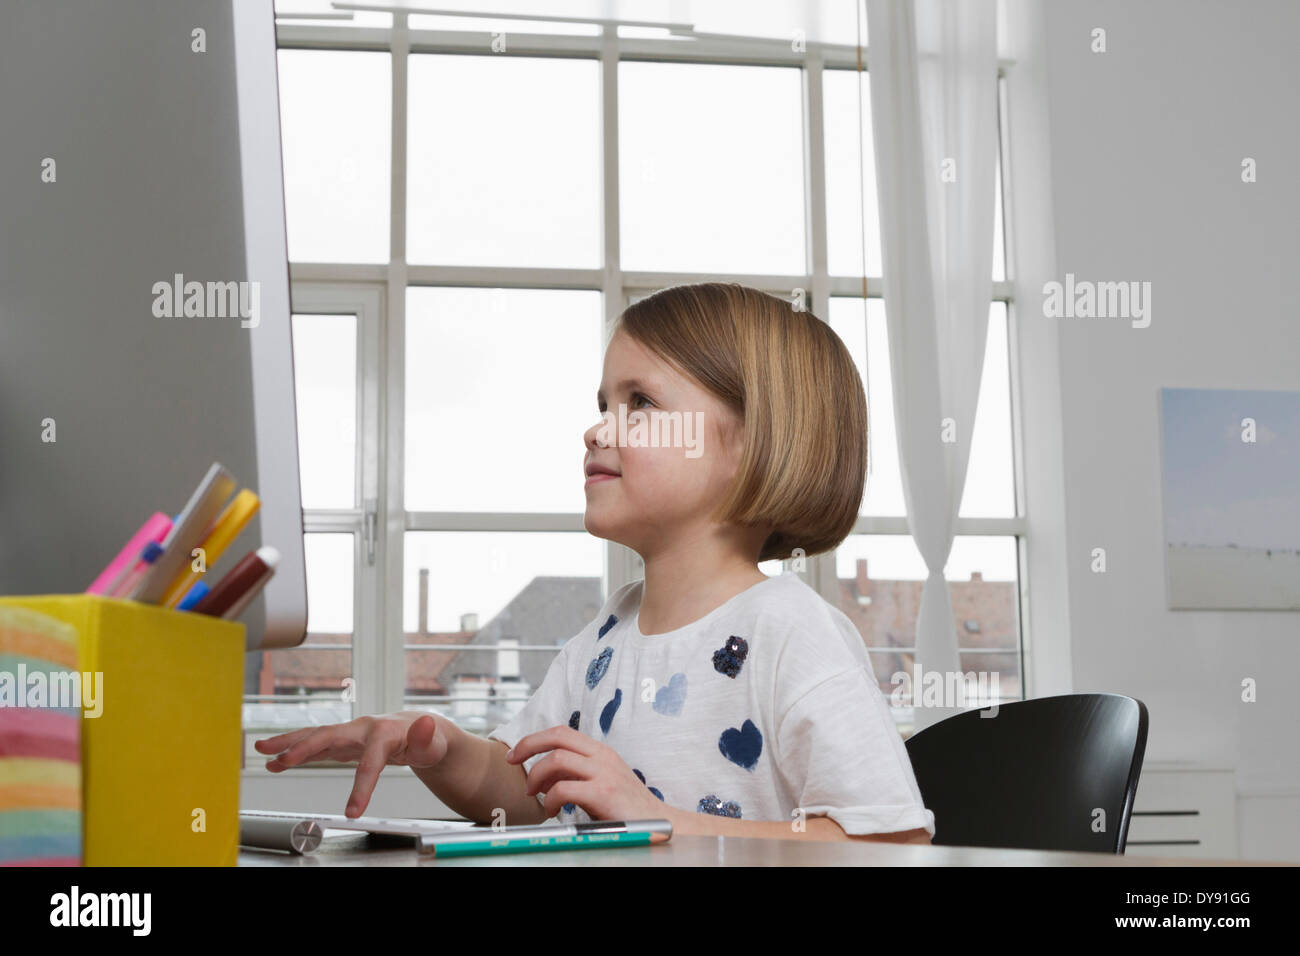 Girl at desk using computer keyboard - Stock Image